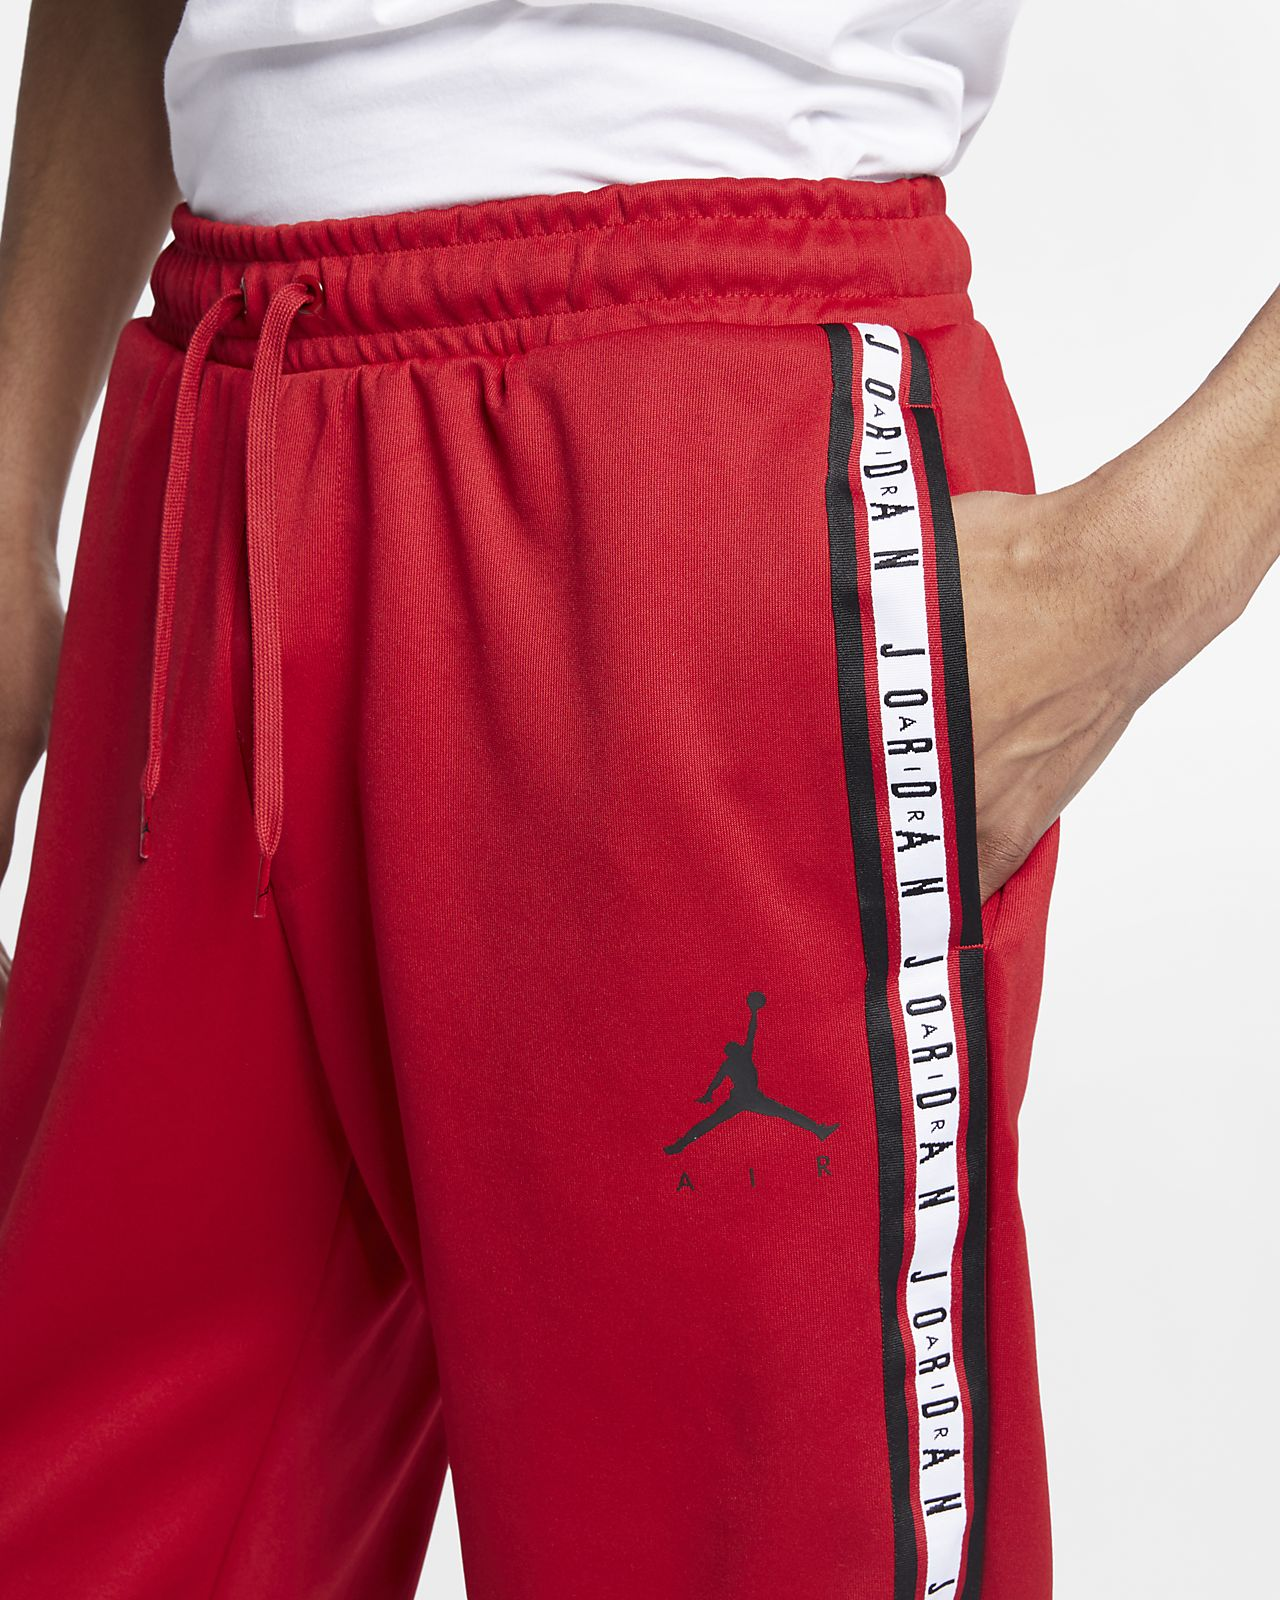 33676b752b86 Low Resolution Jordan Sportswear Jumpman Men s Pants Jordan Sportswear  Jumpman Men s Pants